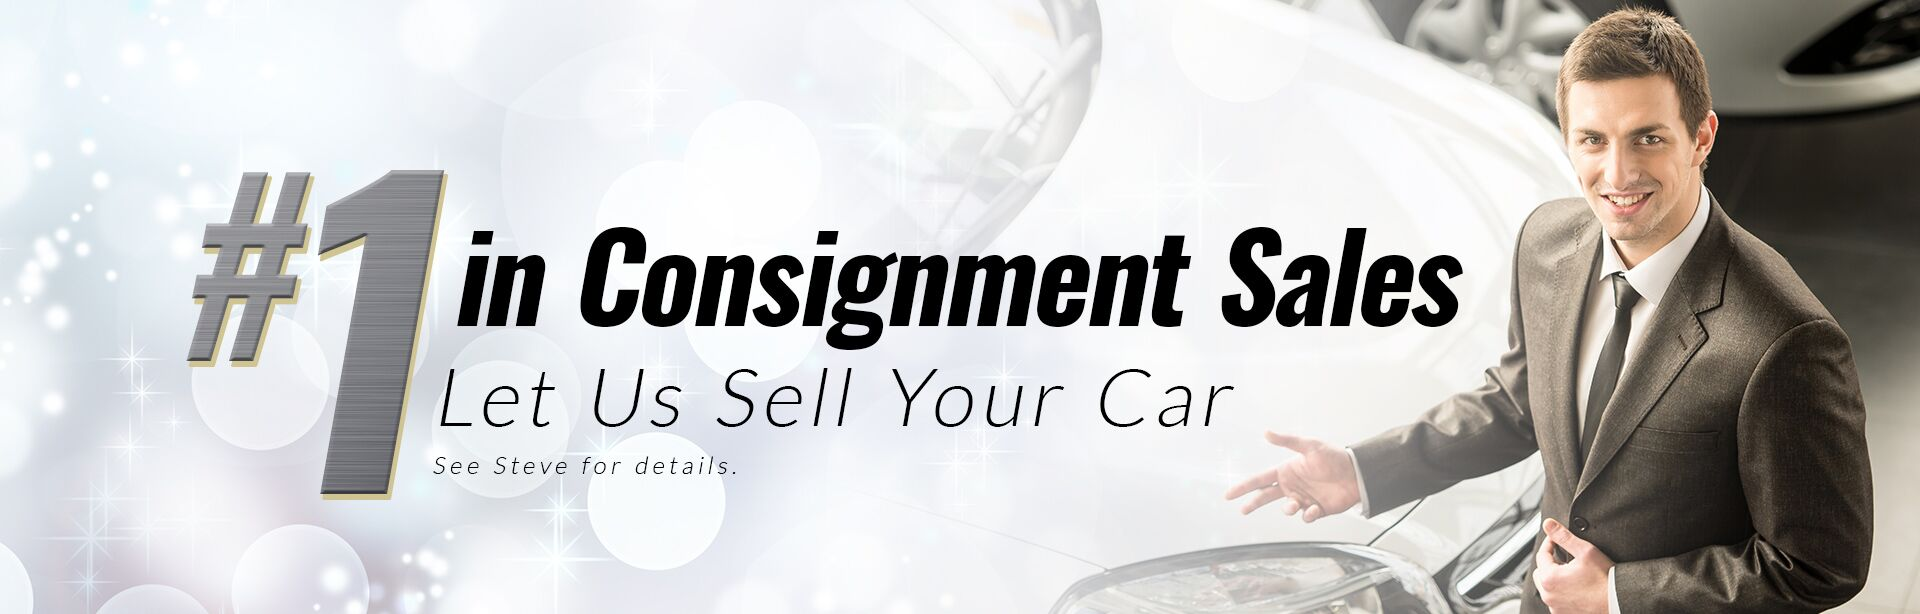 #1 in Consignment Sales